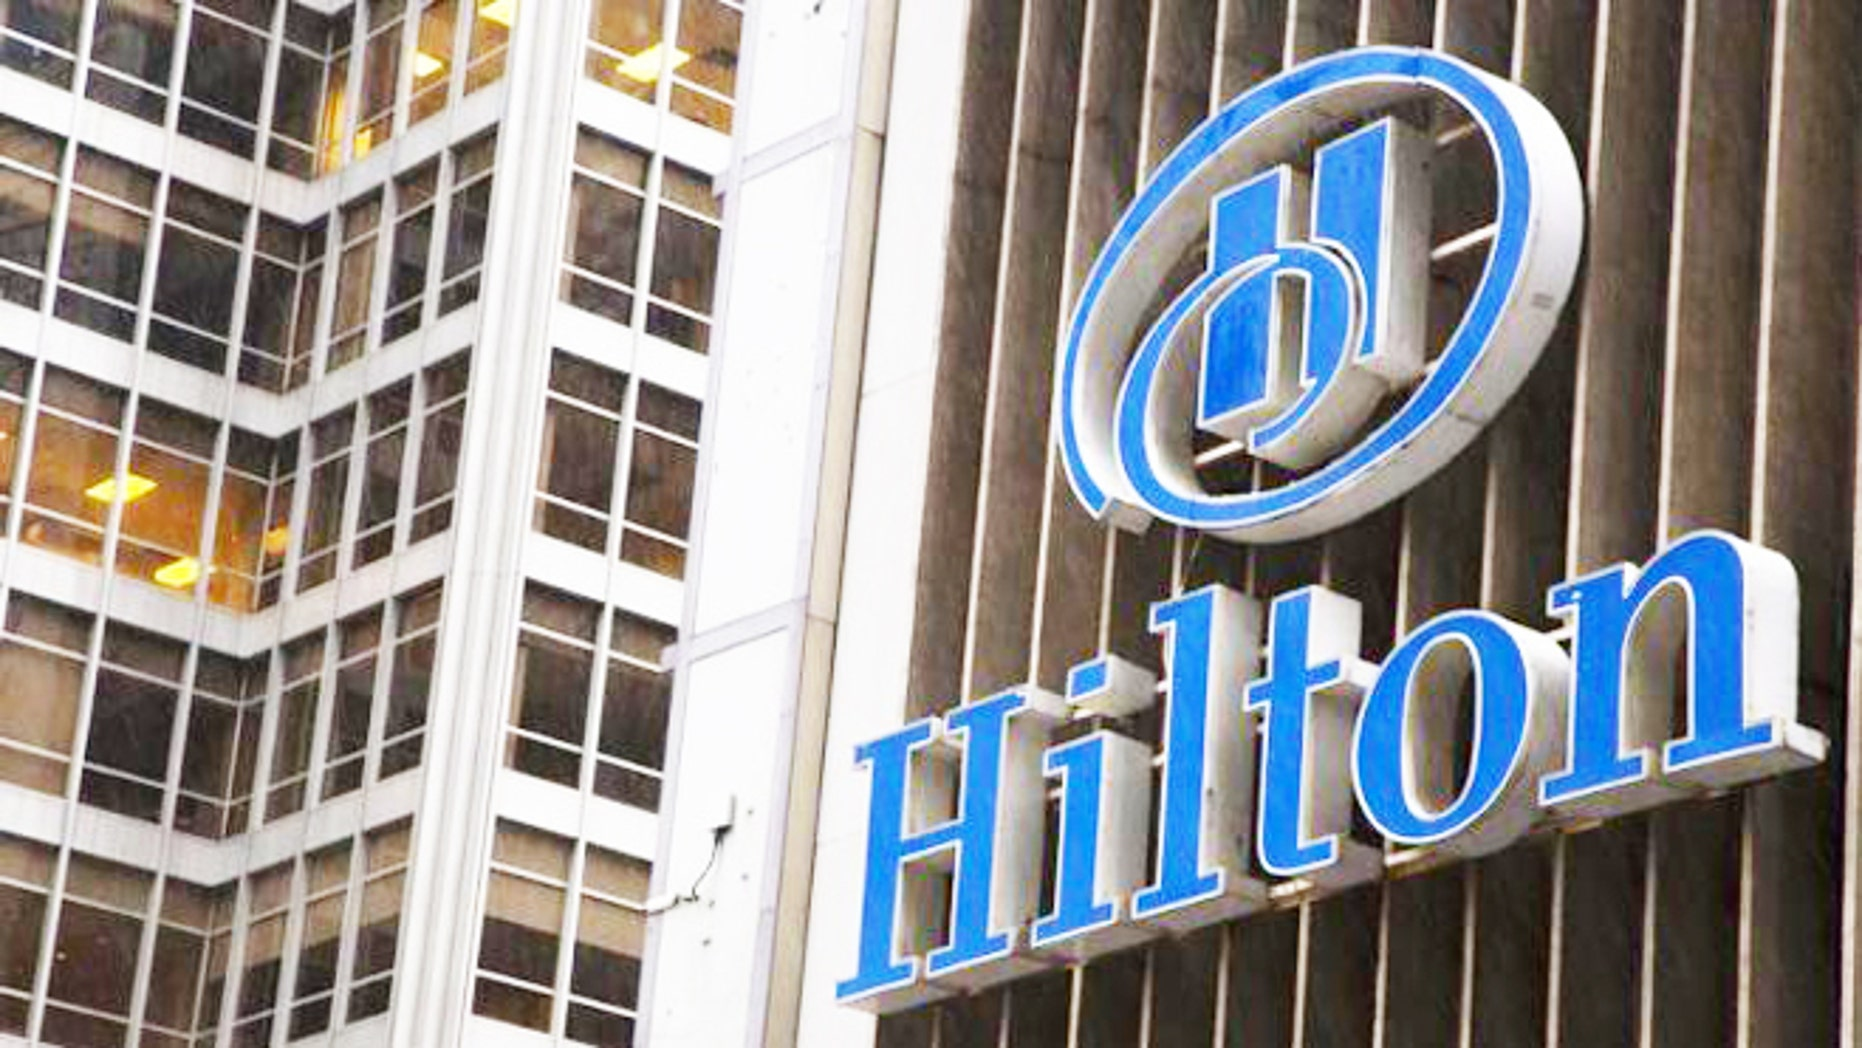 Hilton may be the most despised hotel brand on Twitter.